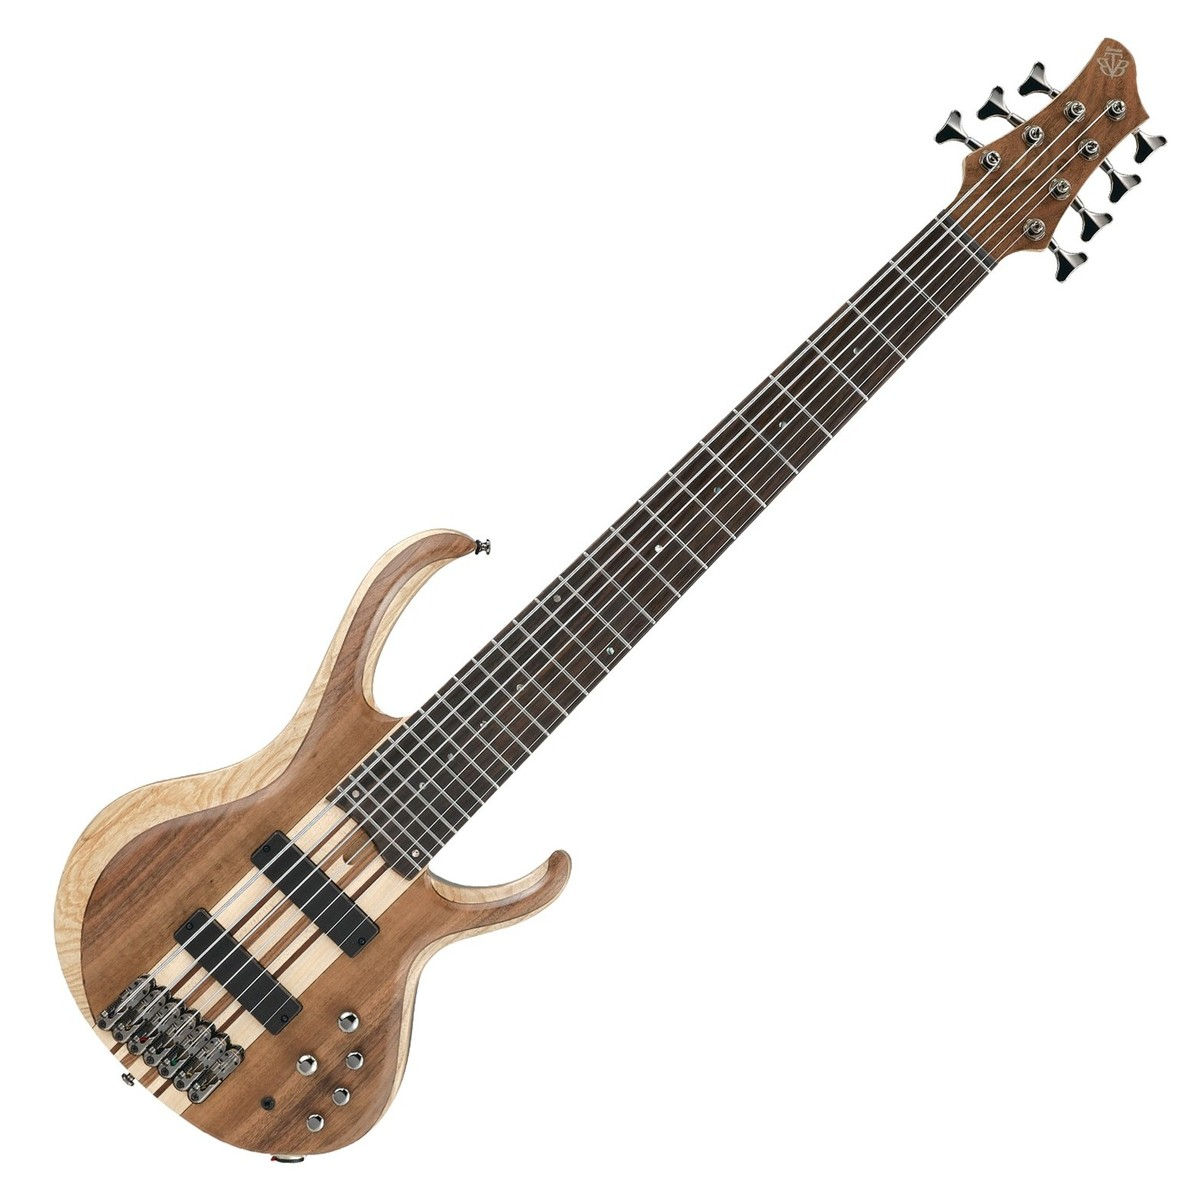 ibanez btb747 7 string bass natural low gloss at gear4music. Black Bedroom Furniture Sets. Home Design Ideas